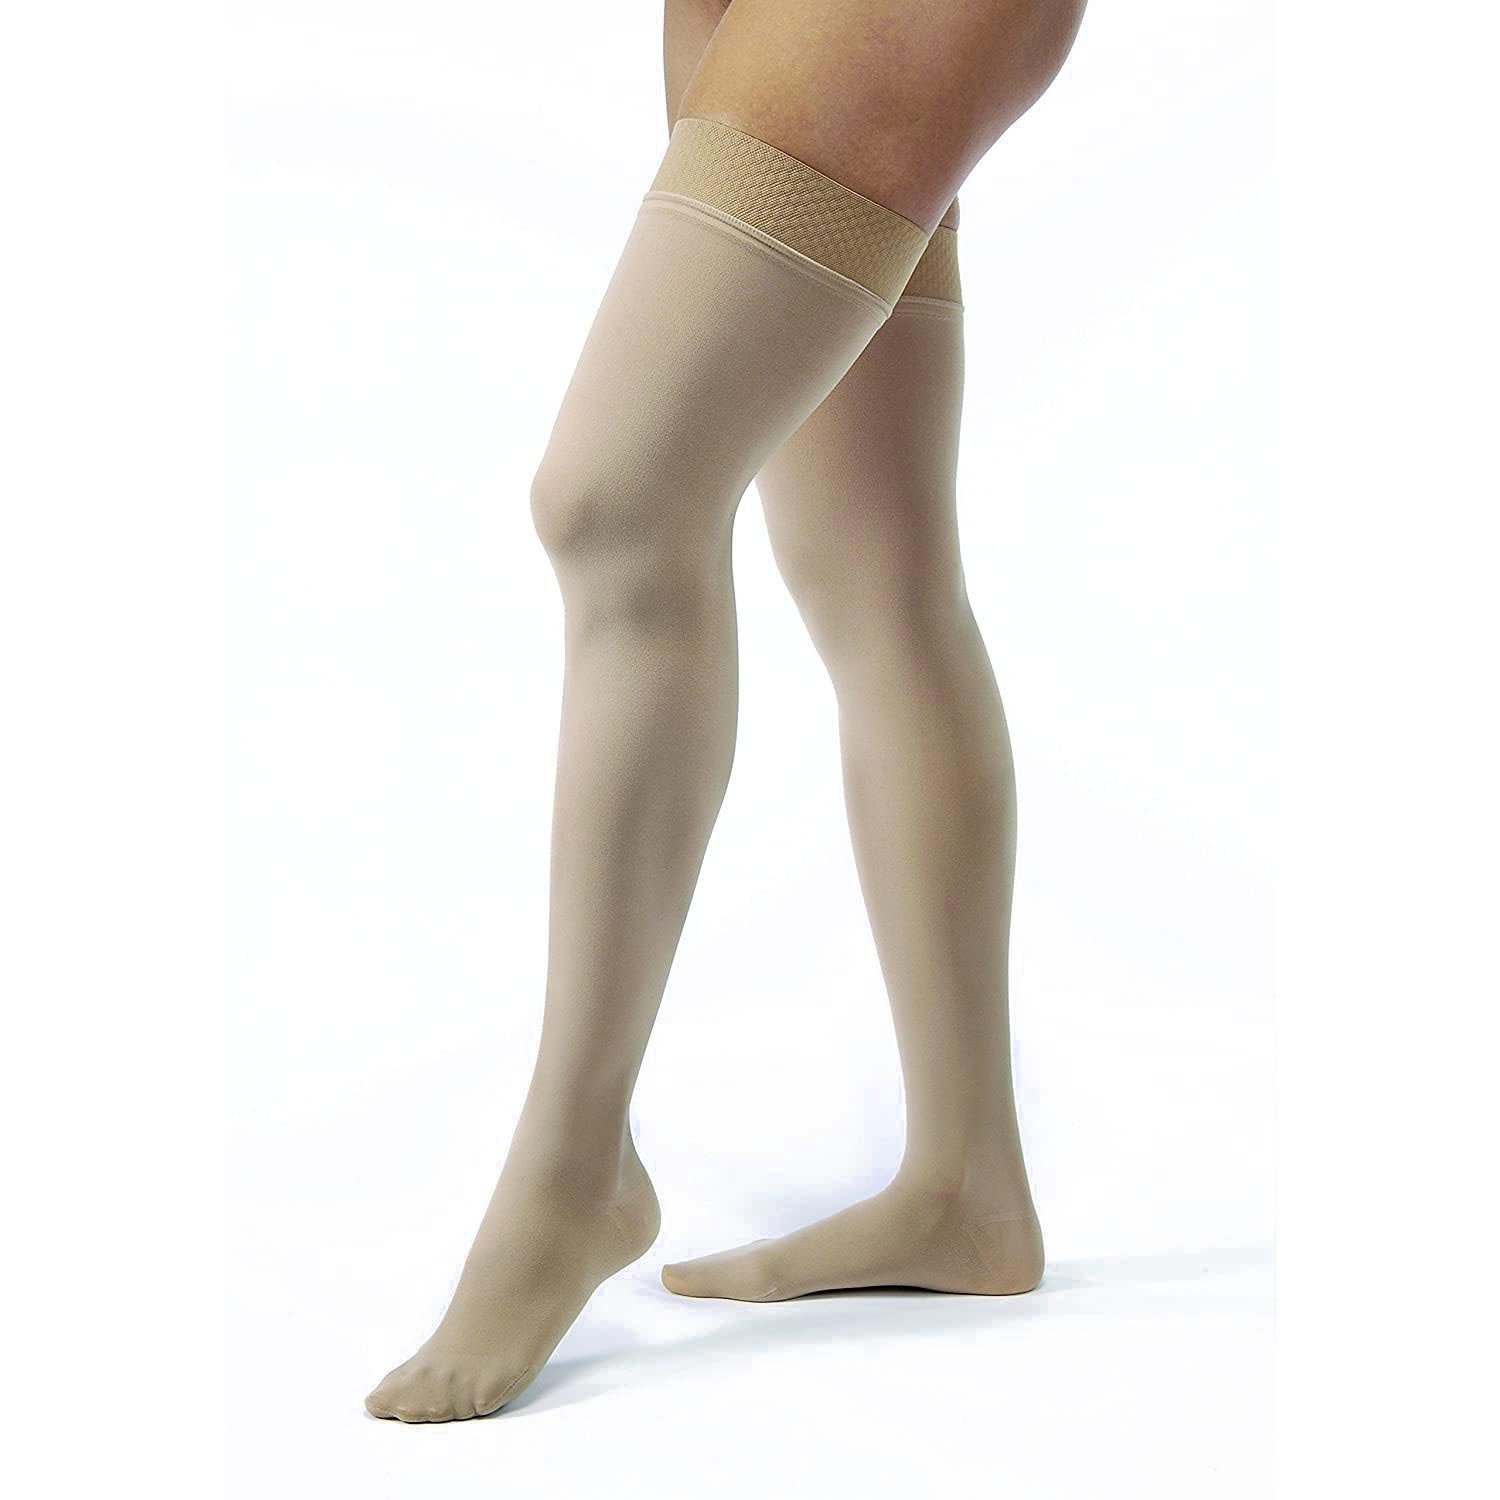 Jobst Opaque Thigh High Compression Stockings with Silicone Sensitive Top